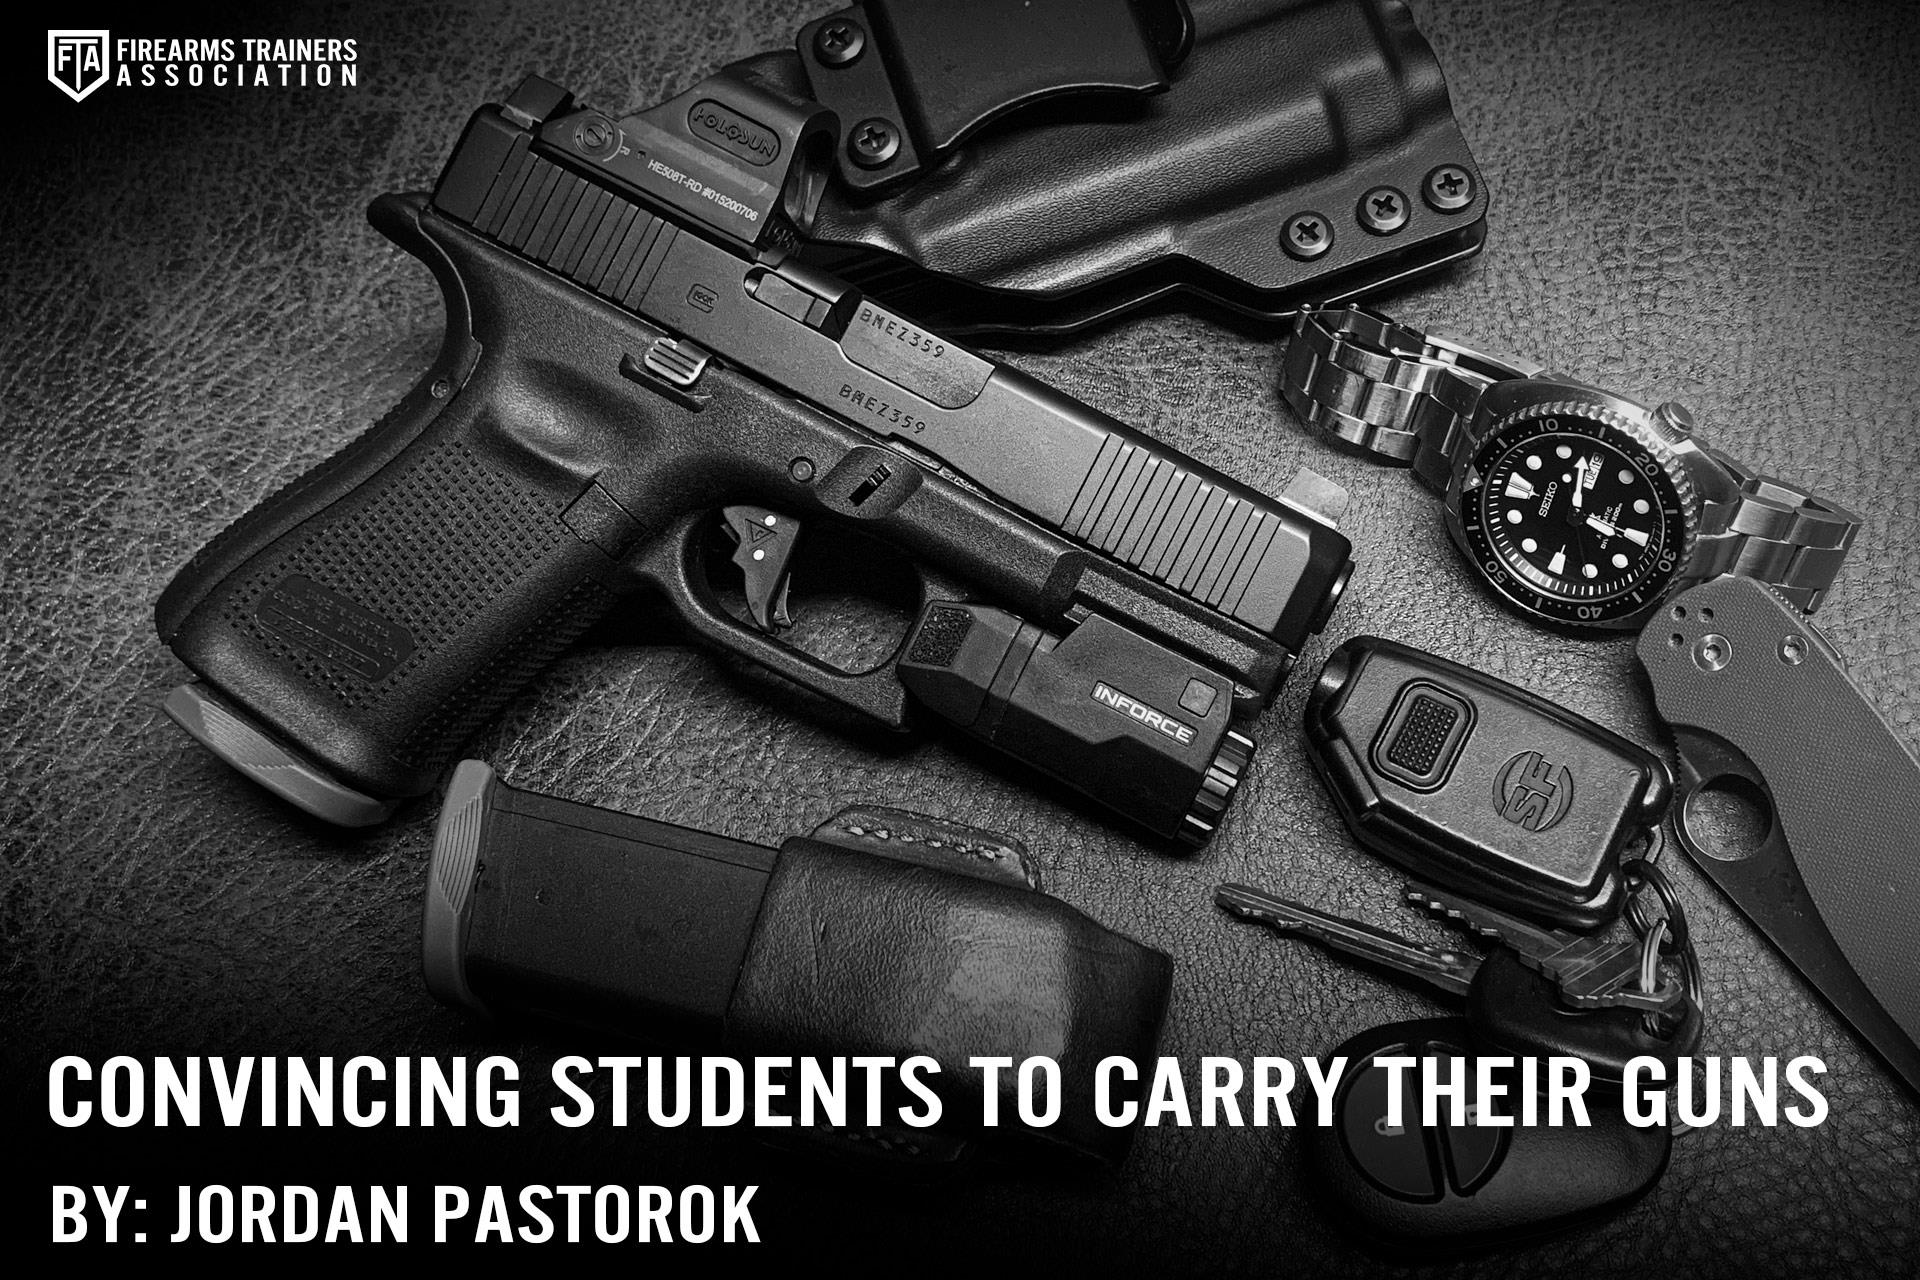 CONVINCING STUDENTS TO CARRY THEIR GUNS